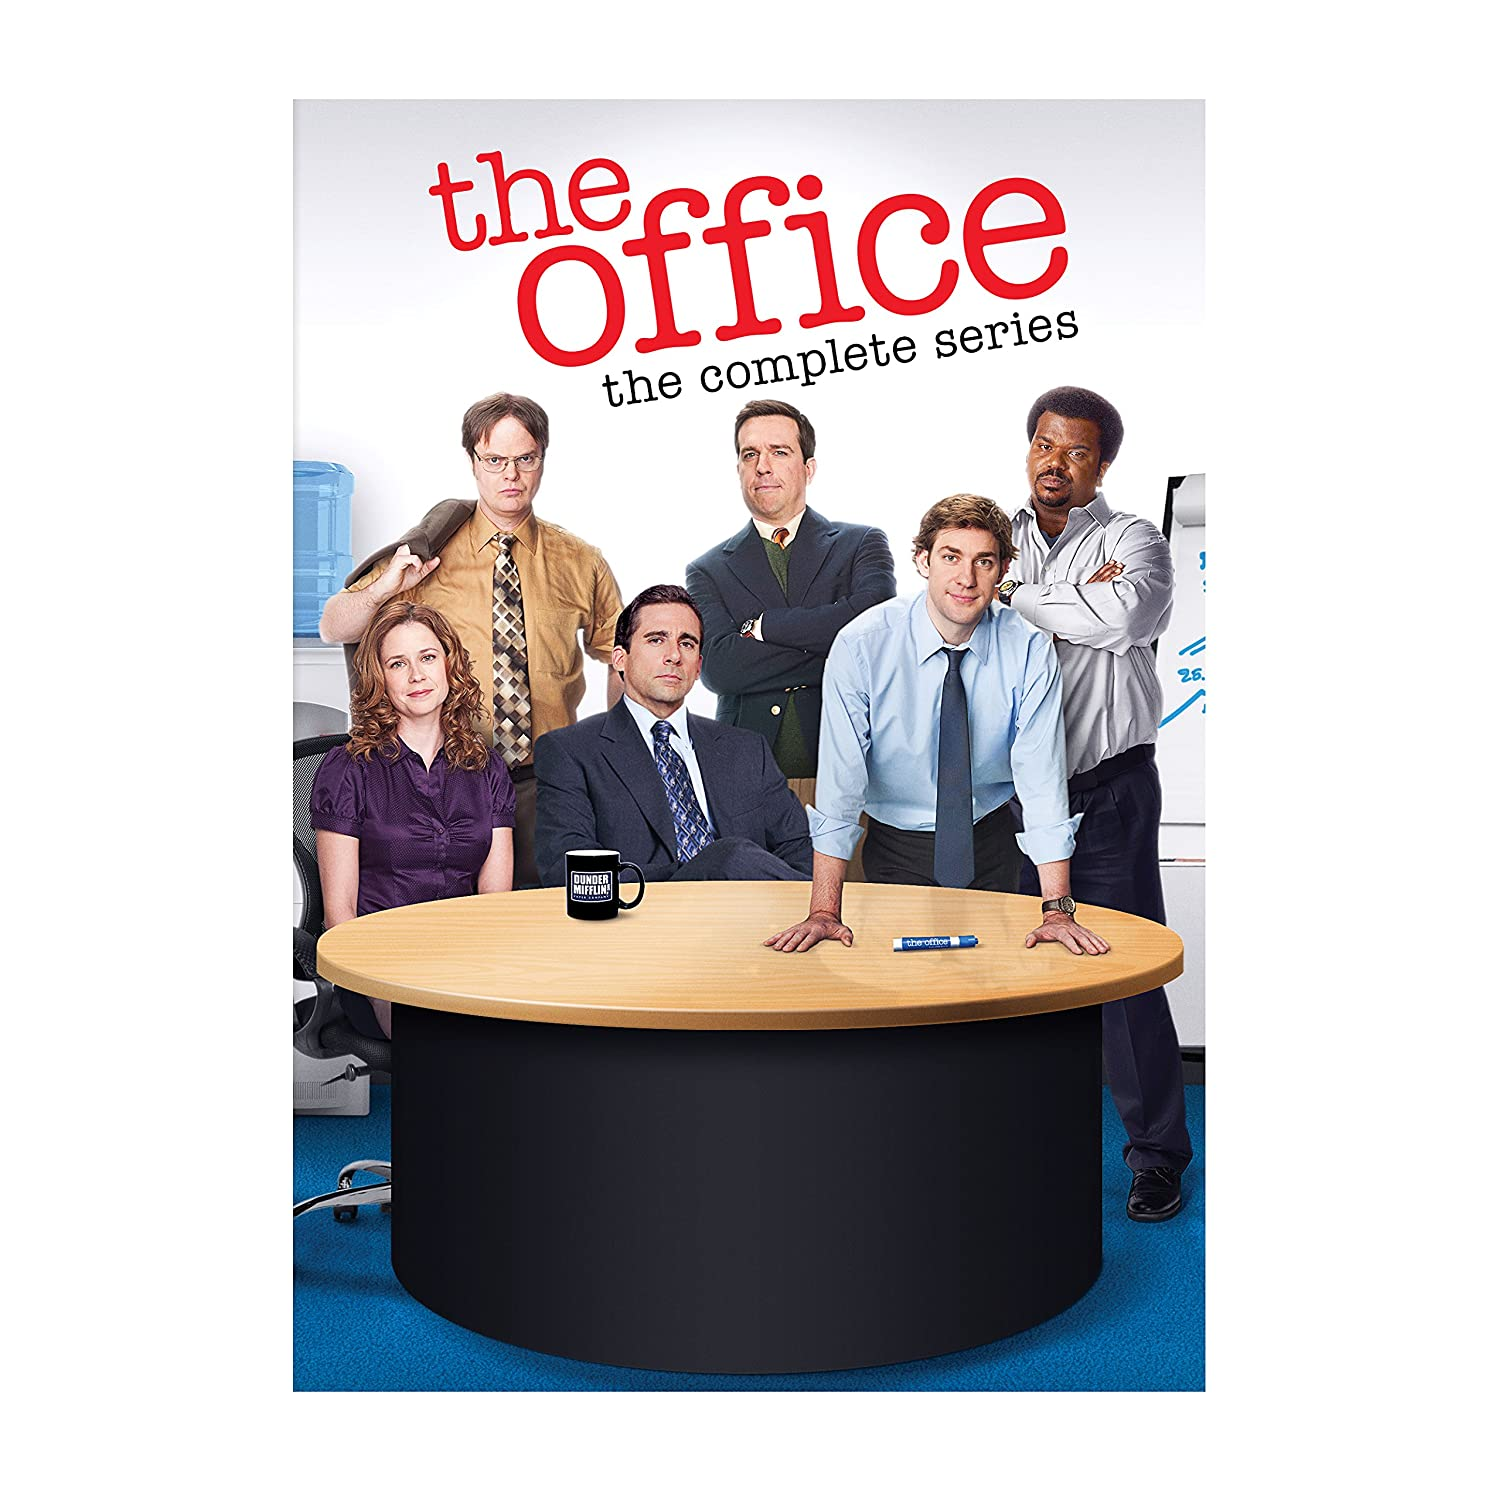 The Office: The Complete Series Steve Carell Rainn Wilson Jenna Fischer John Krasinski